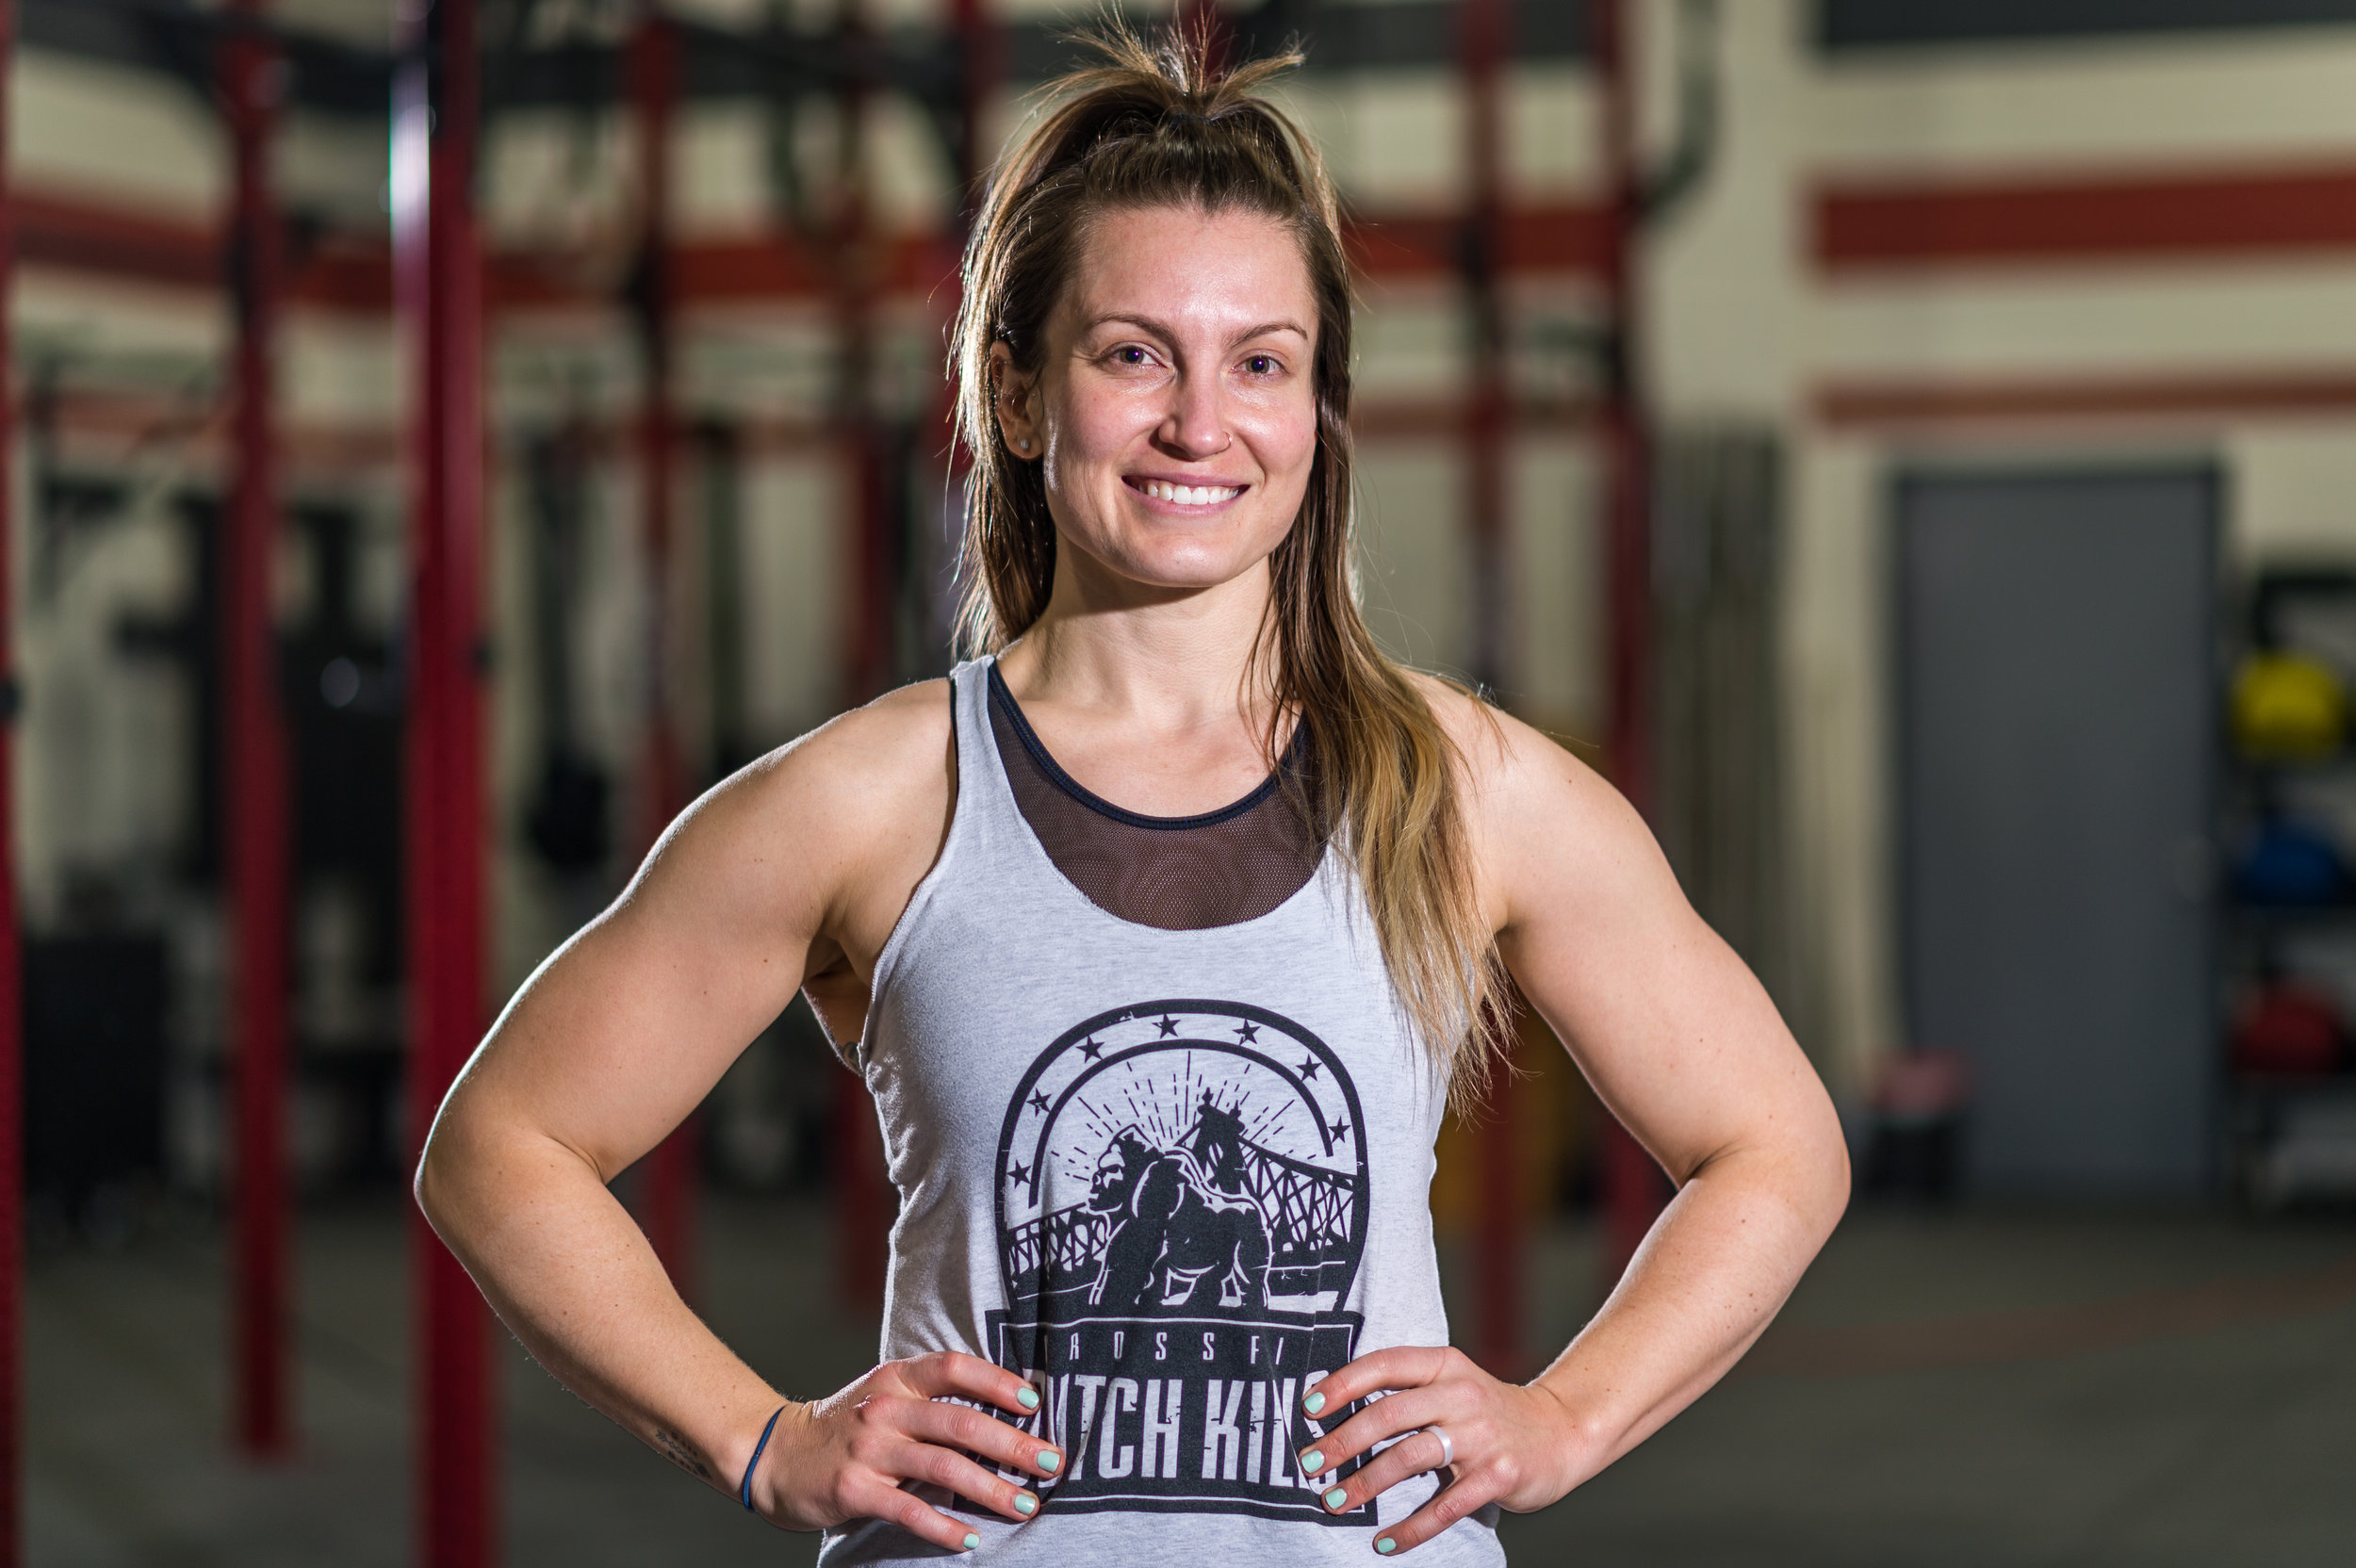 KASEY HEIL   Hometown: Los Gatos, California   CrossFit Level 1 CrossFit Endurance  CrossFitting since 2012 Favorite Movement: Snatch Least Favorite Movement: Toes to Bar